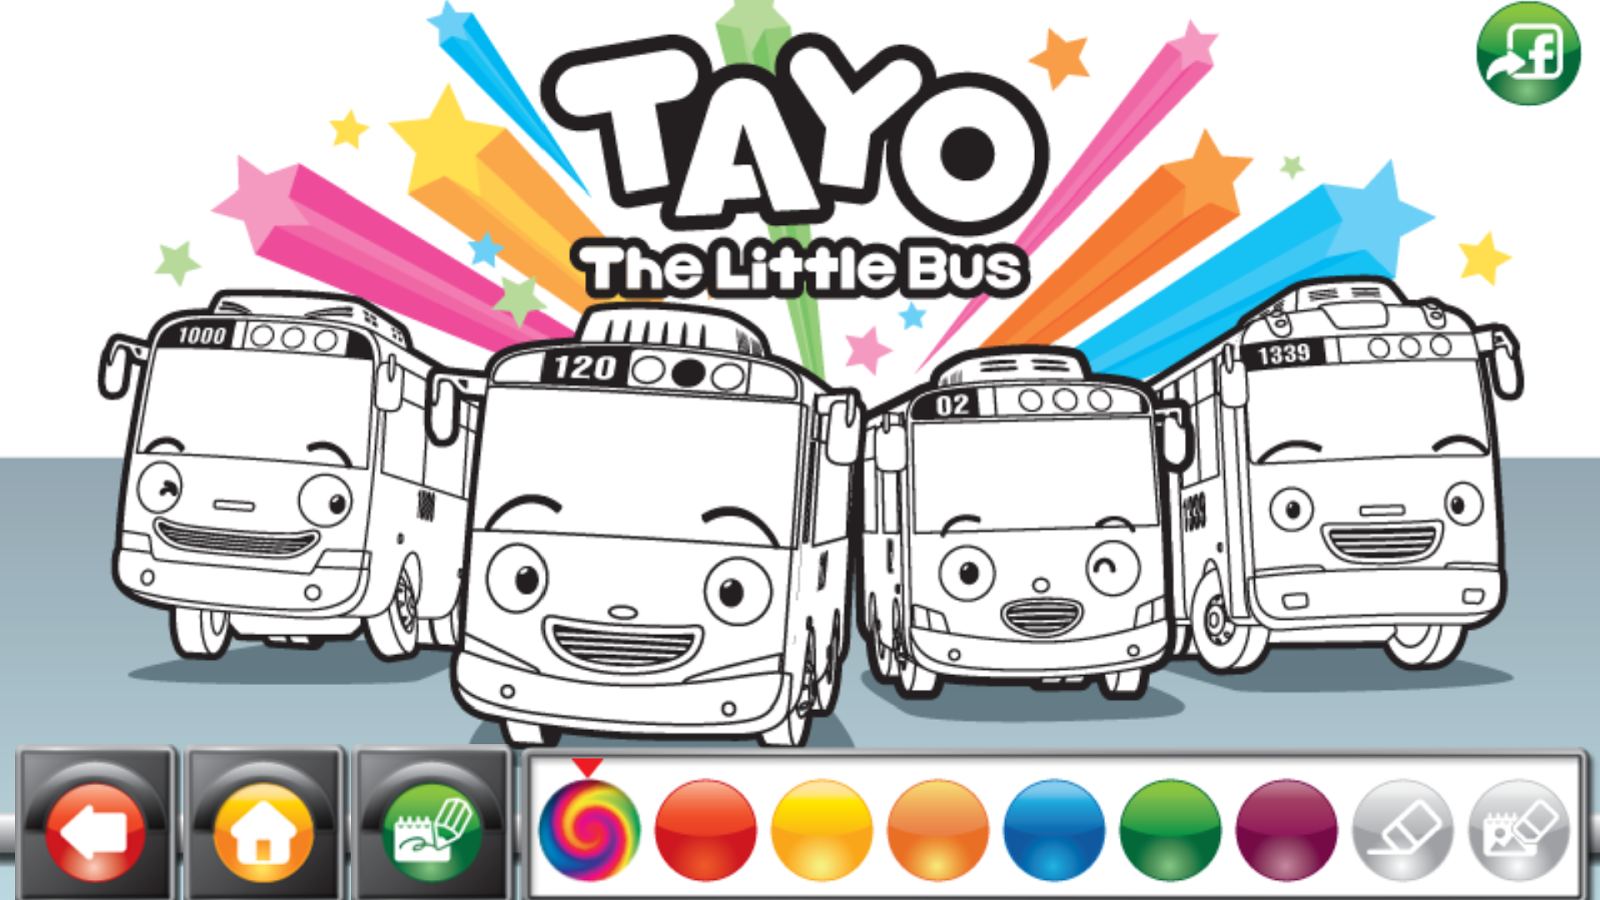 tayo the bus coloring pages - photo#10